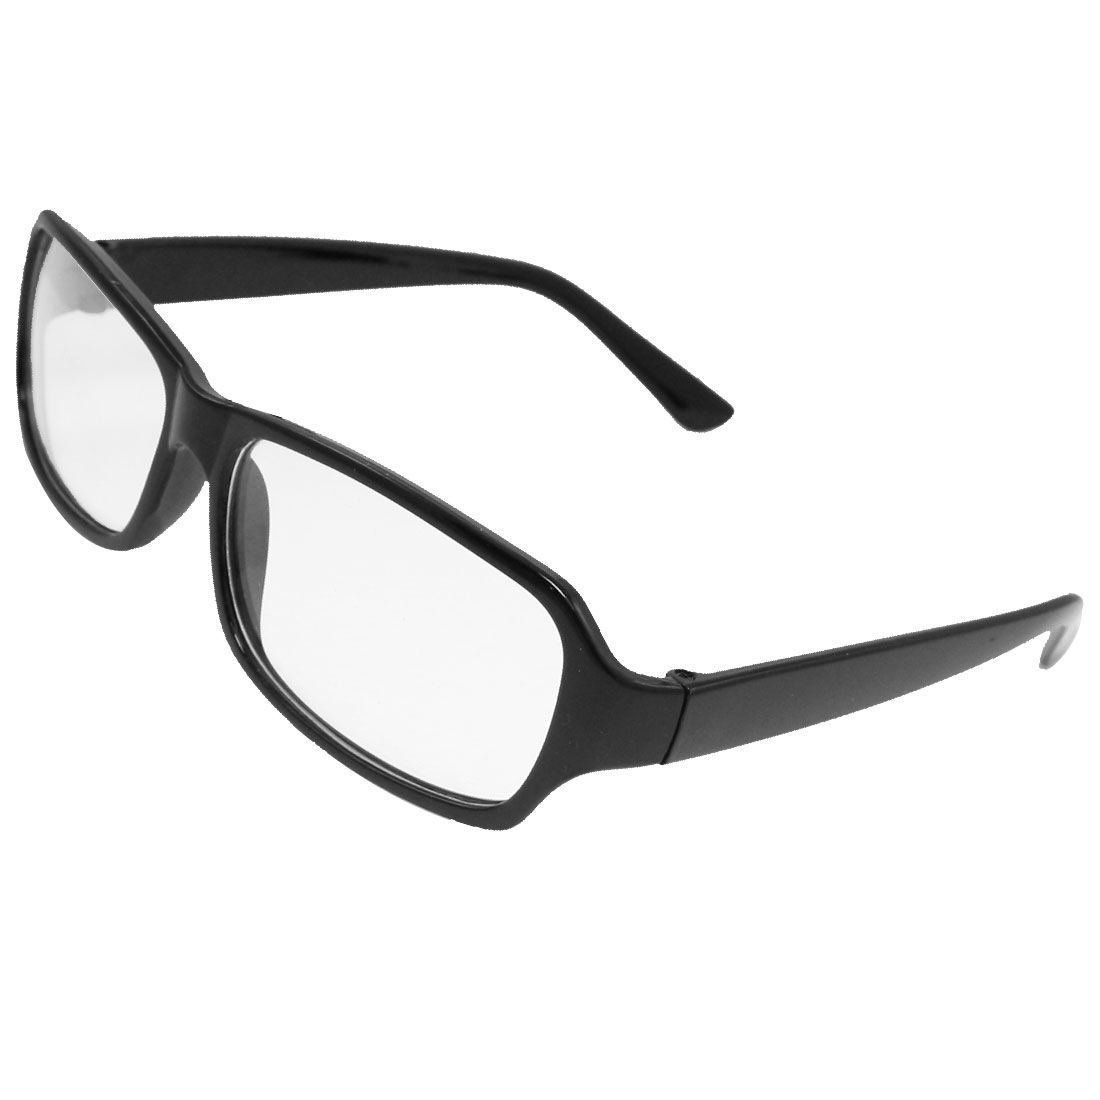 Man Woman Black Plastic Full Frame Clear Len Plain Glasses